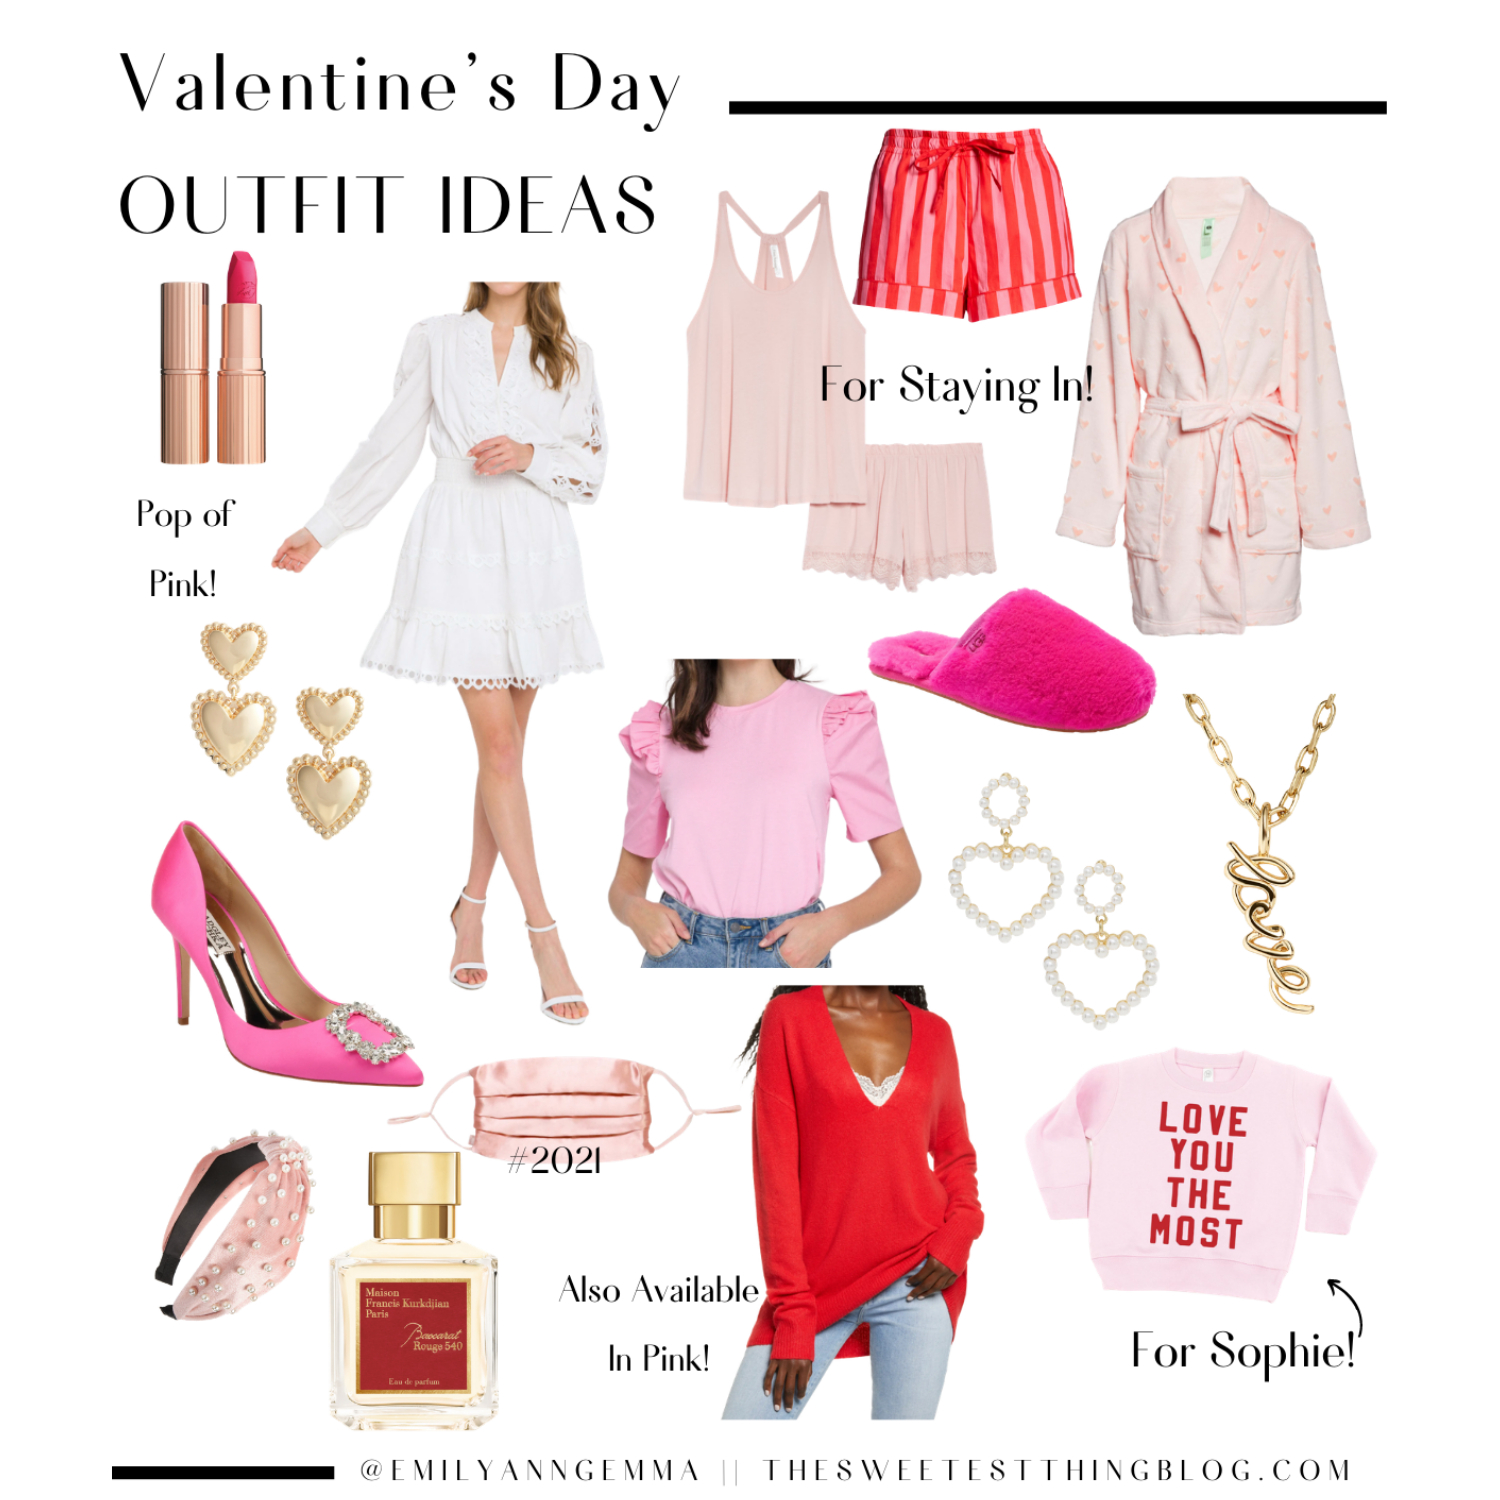 Valentine's Day Outfit Ideas by popular US fashion blog, The Sweetest Thing: collage image of a Charlotte Tilbury Hot Lips Lipstick in Electric Peony, Endless Rose White Lace Dress, Pink Lace Pajama Set, Pink and Red Striped Pajama Shorts, Plush Heart Robe, Gold Heart Earrings, Pink Puff Sleeved Tee Shirt, Pink Fuzzy Slippers, Pearl Heart Earrings, 'Love' Gold Chain Necklace, Pink Pumps, Pearl & Pink Headband, Pink Silk Face Mask, V-Neck Sweater, Love You The Most' Sweatshirt[for Sophie]  #16. Baccarat Rouge Perfume.